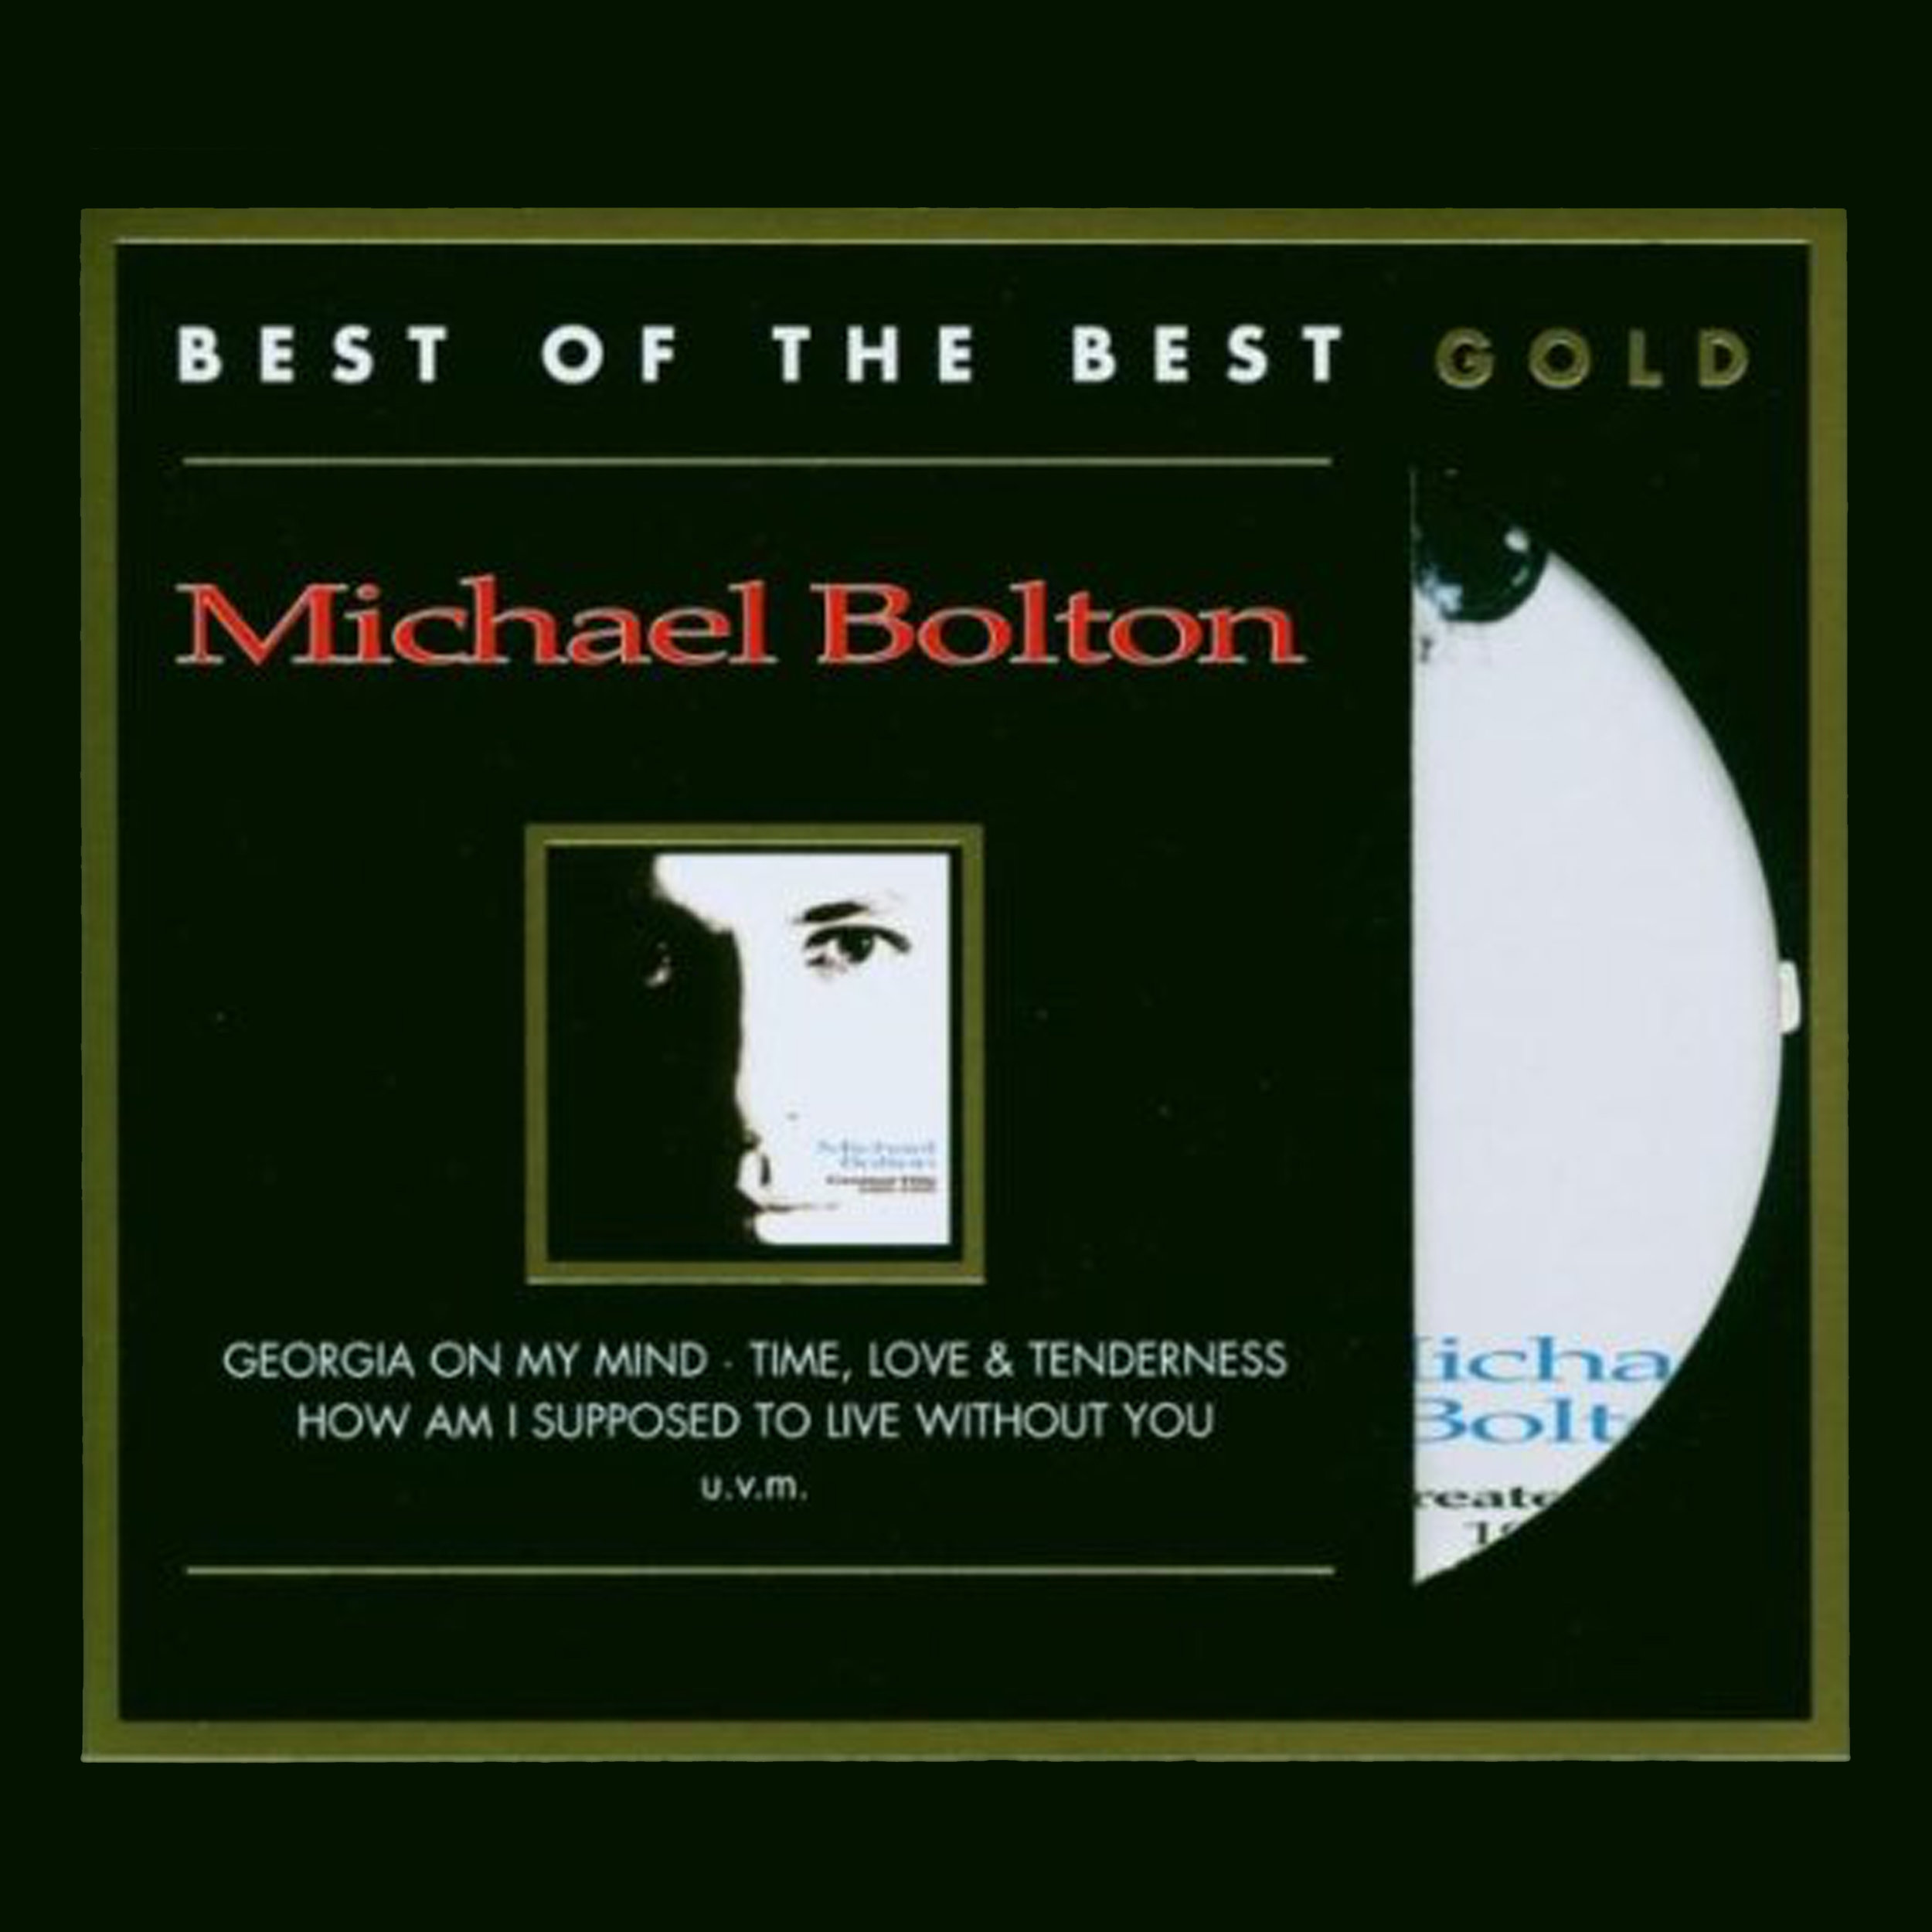 Michael Bolton The Best of Gold.jpg